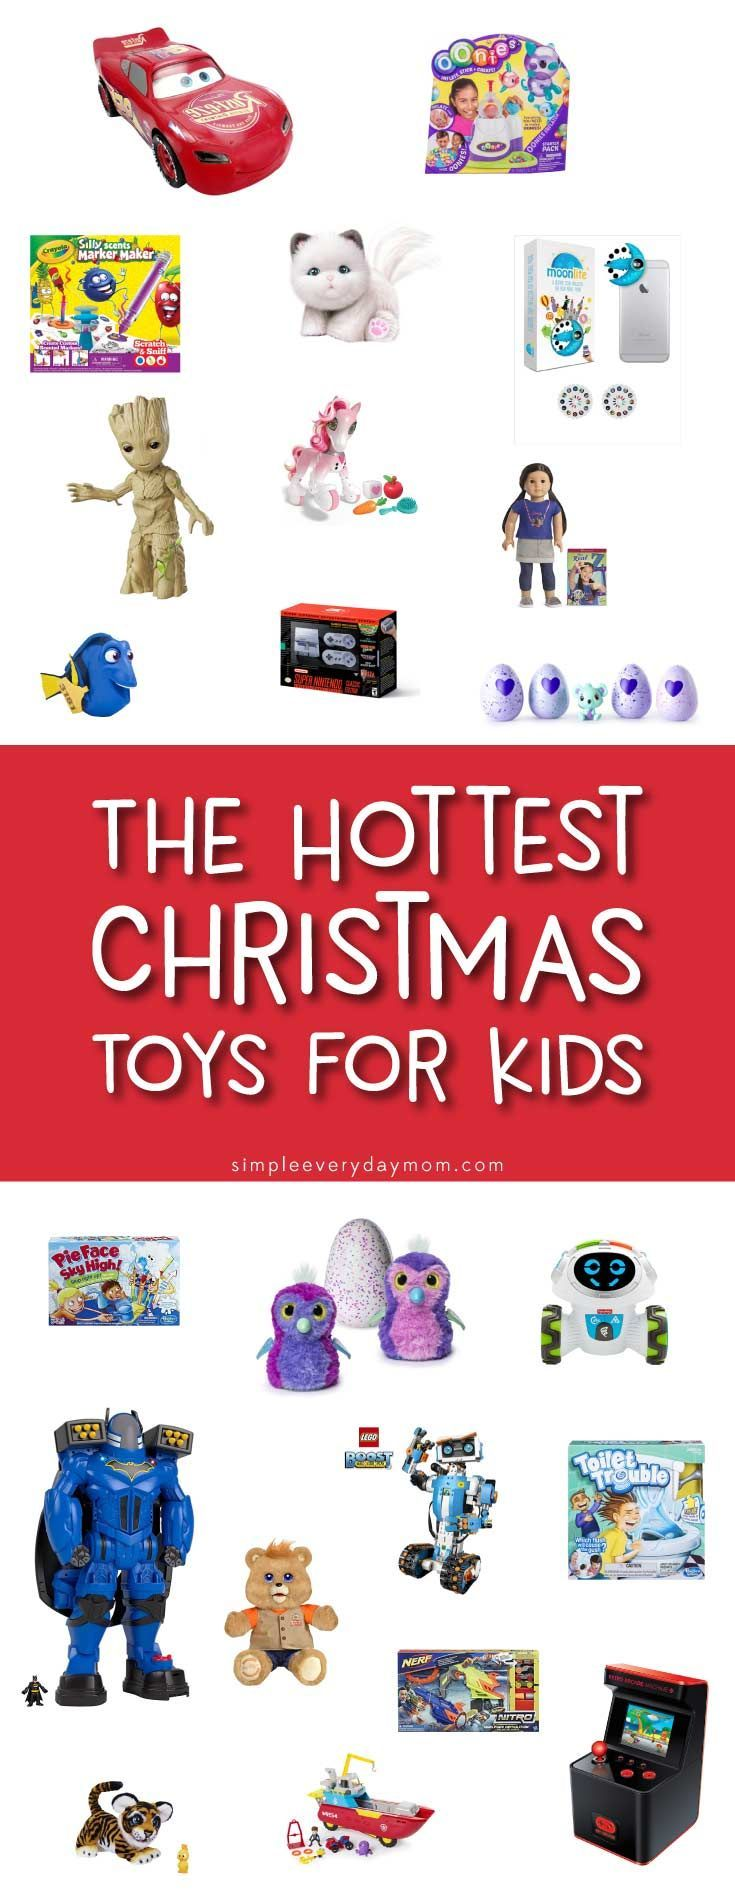 Most Popular Gifts This Christmas Part - 18: Find The Top Childrenu0027s Christmas Gifts In One Place With This Guide To The Most  Popular